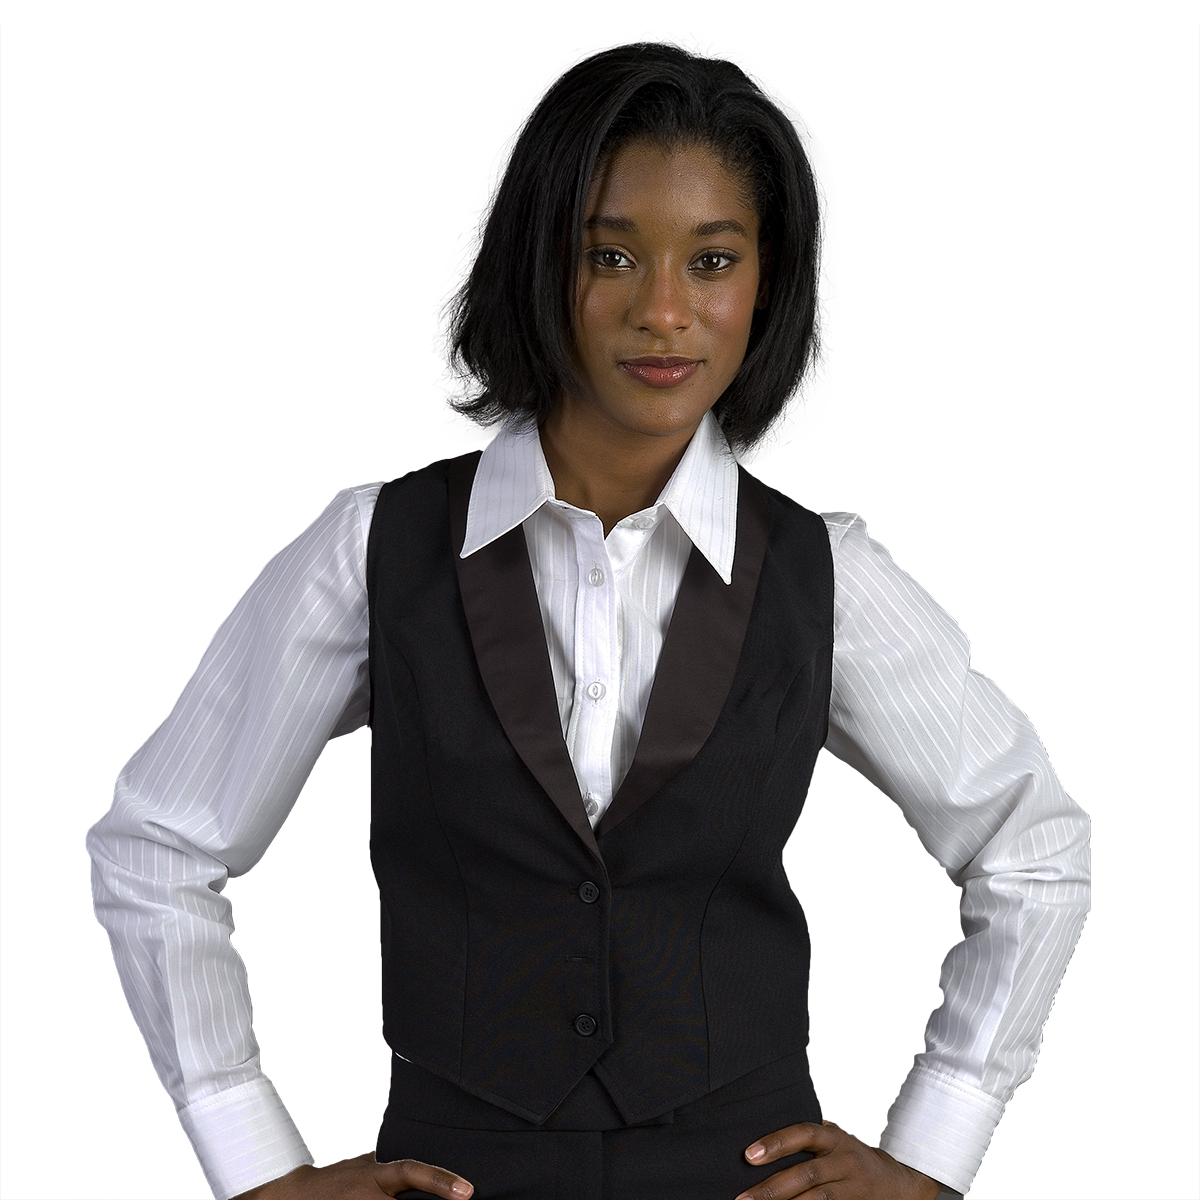 457c2149a79 Women's Tuxedo Vest Gourmet Lined with Satin Collar – Executive Apparel